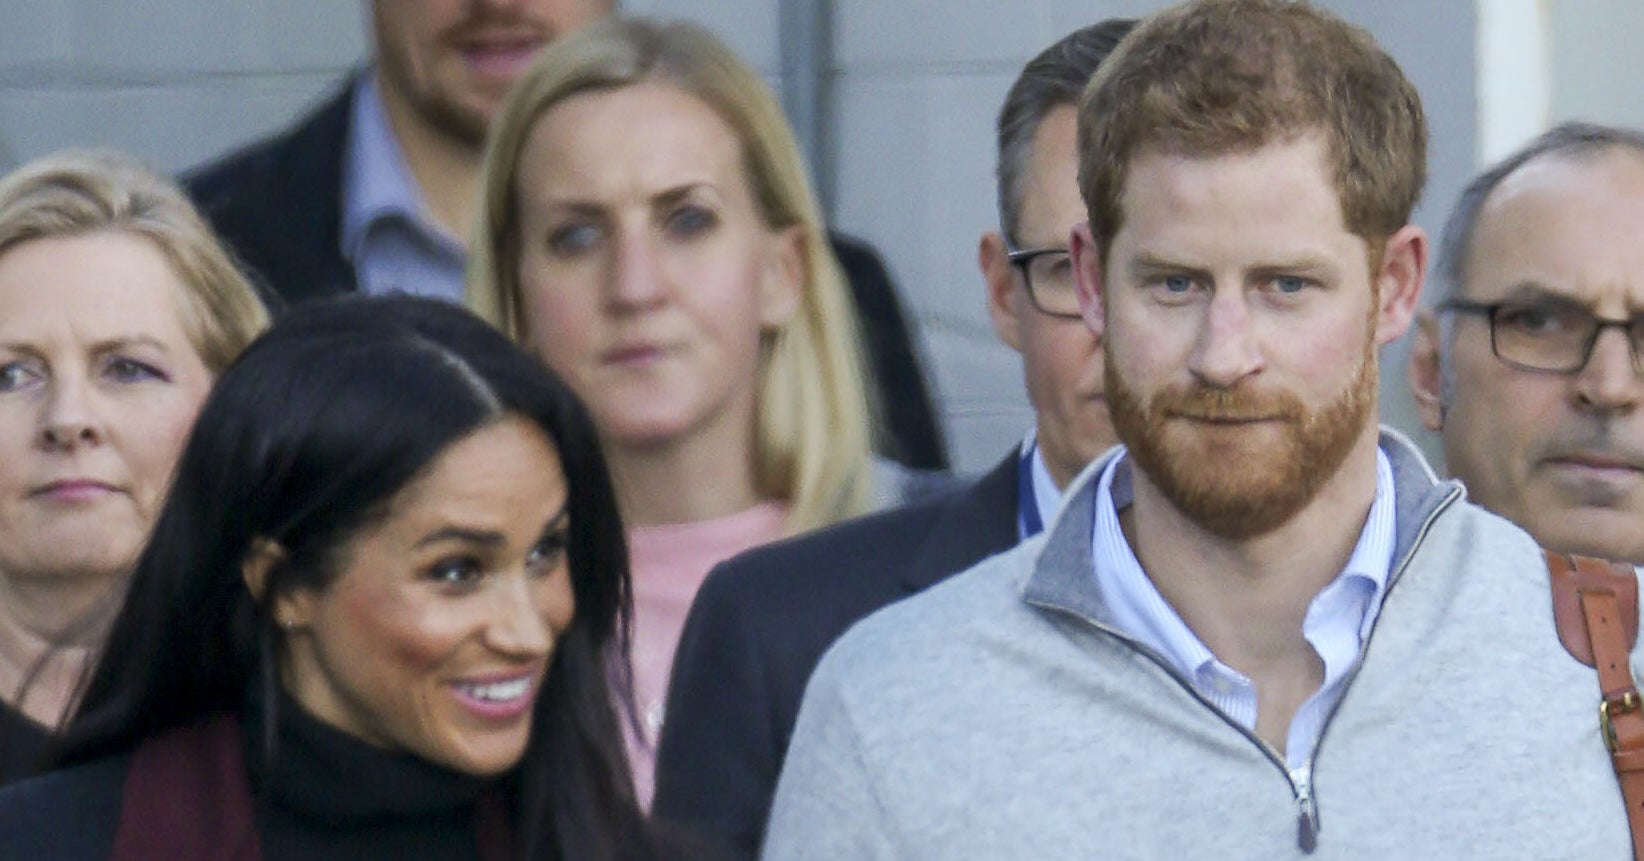 Prince Harry And Meghan Markle Are Here And Australia Has Lost Its Damn Mind